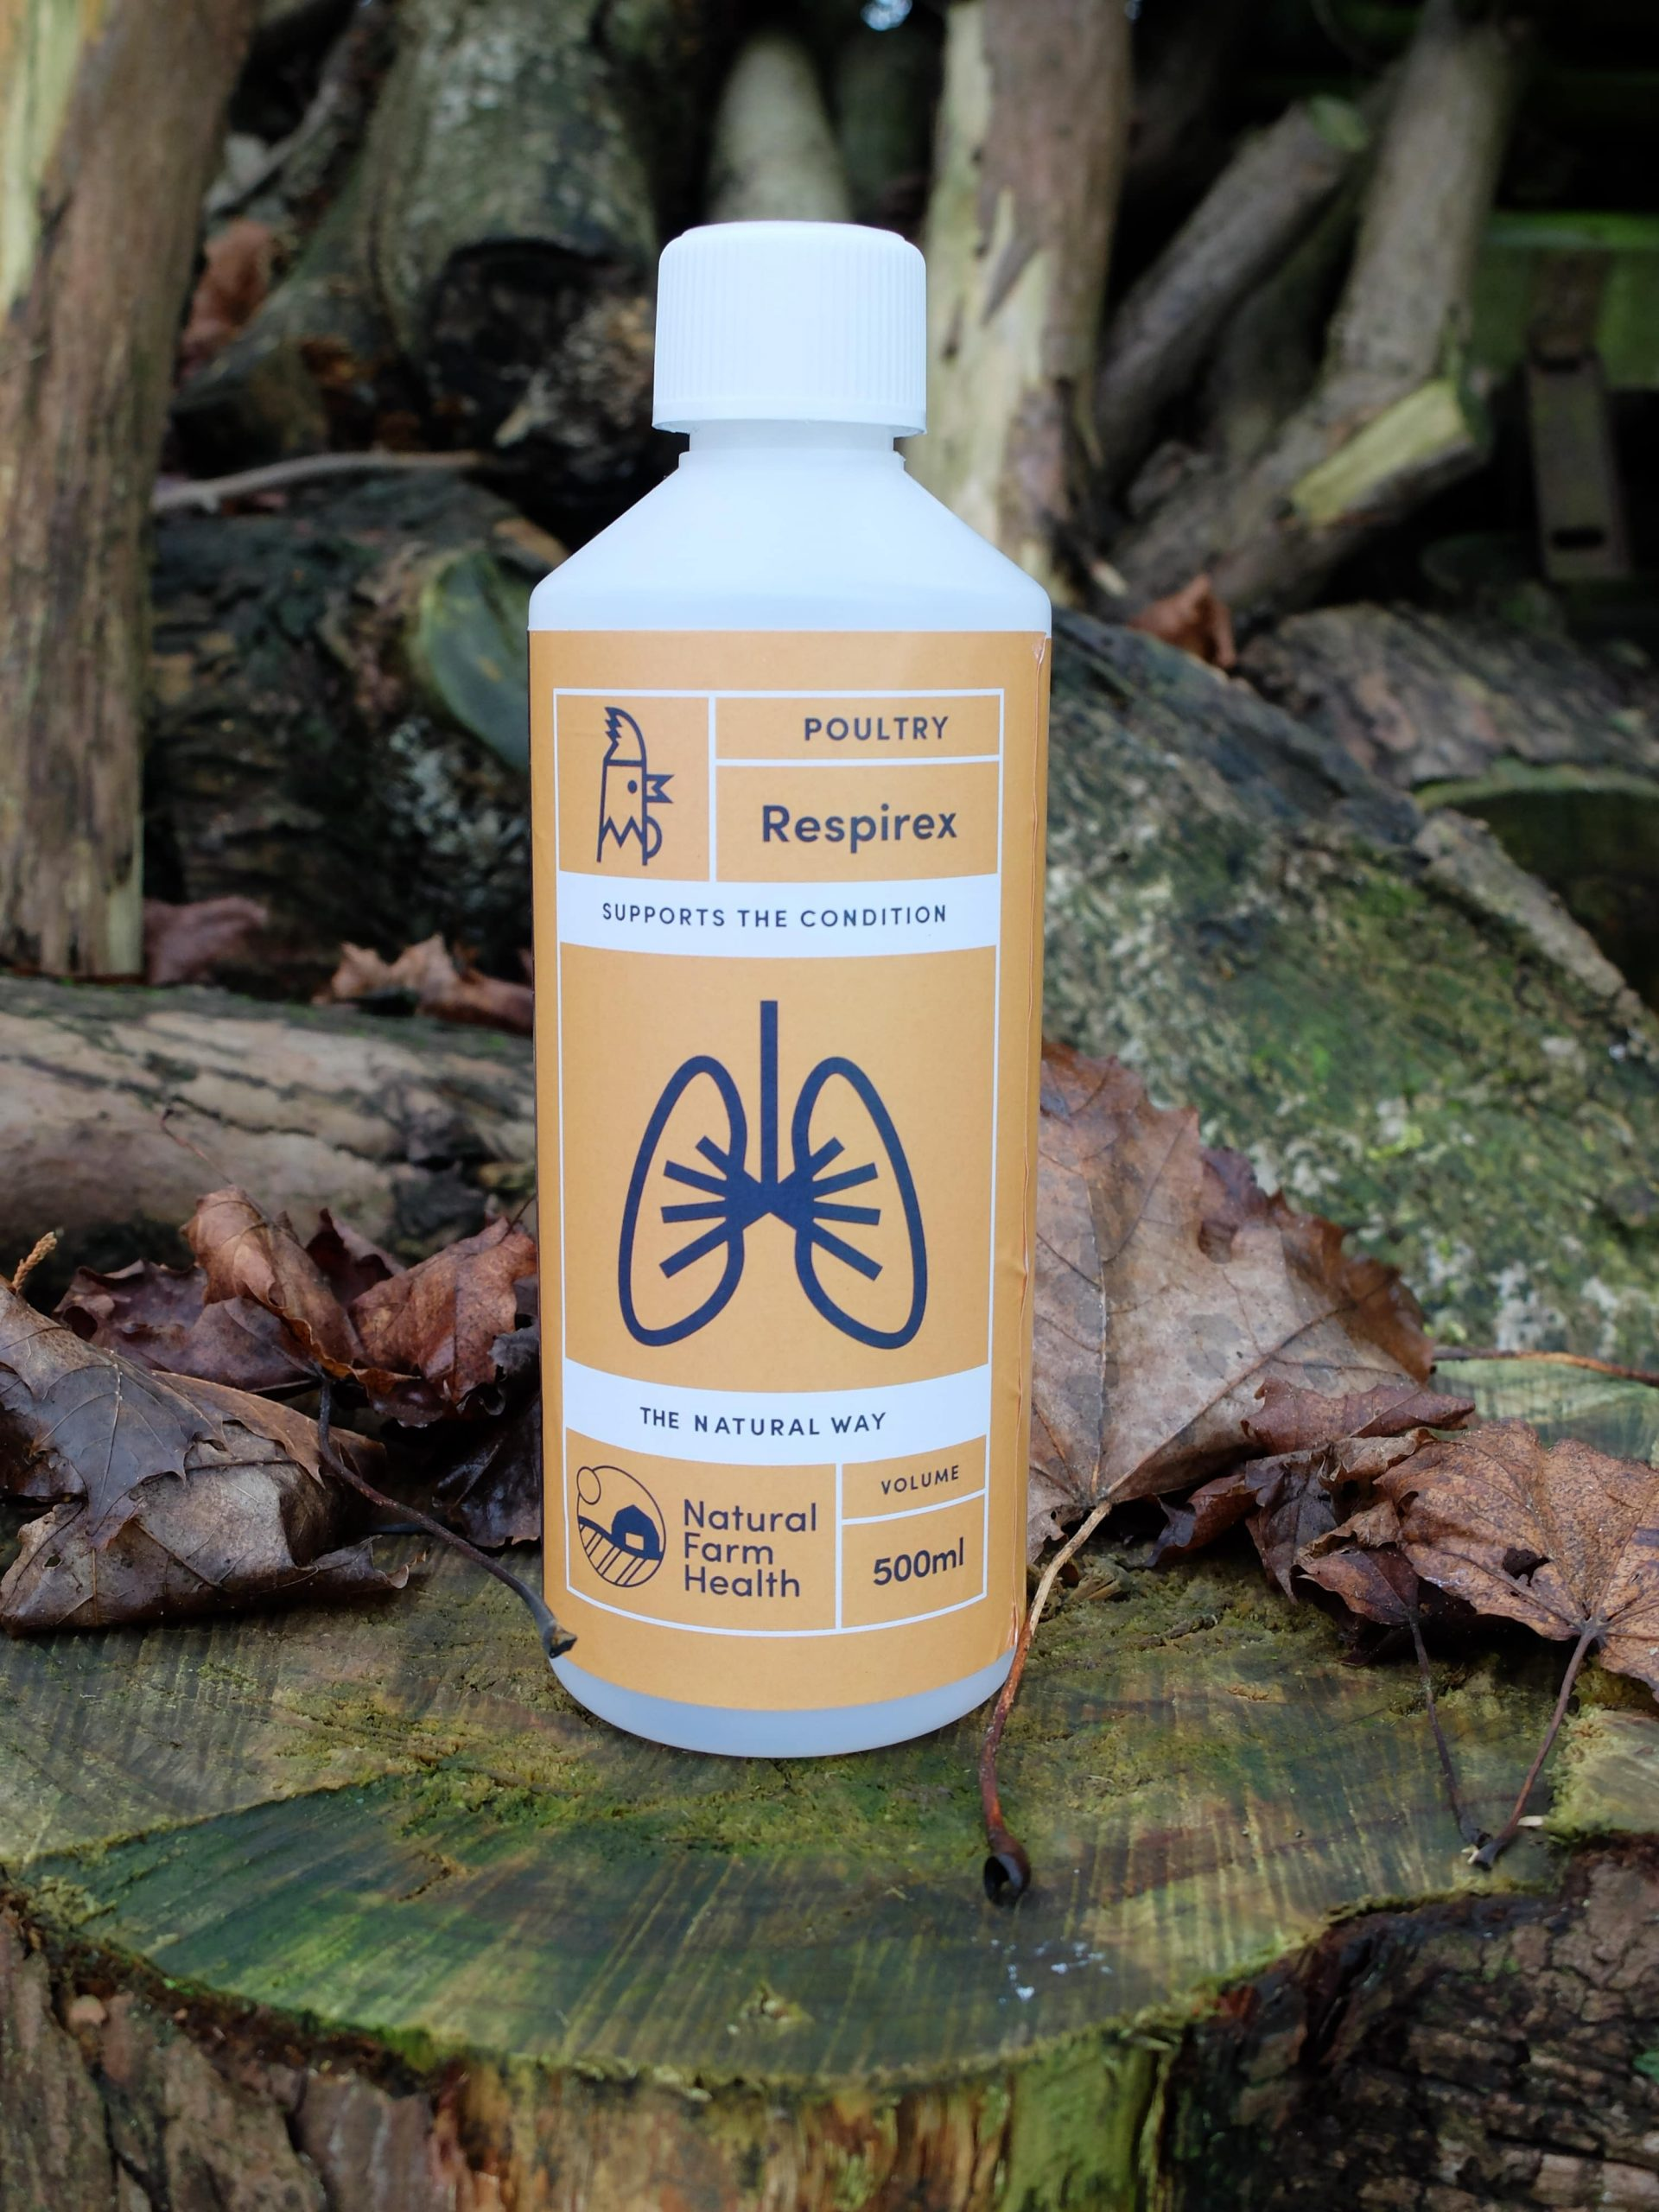 Respirex for poultry with breathing difficulties